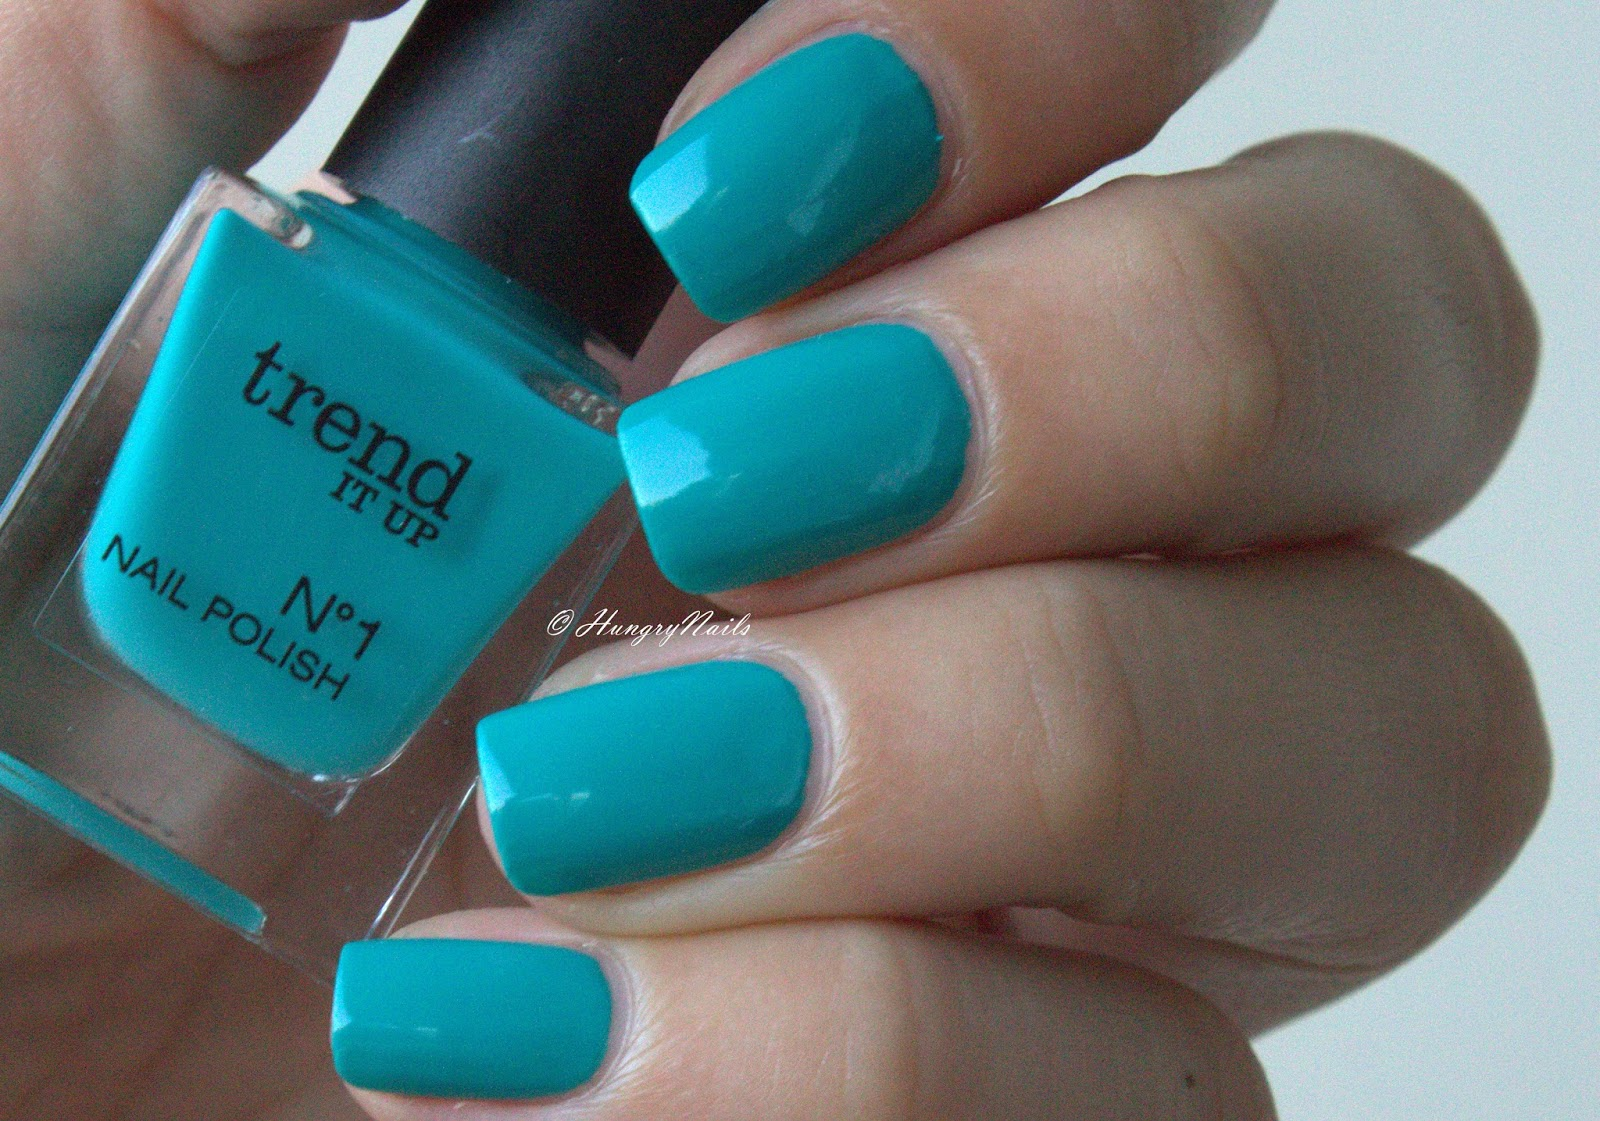 Trend IT UP | No.1 Nail Polish 050 - HungryNails Blog | Die bunte ...